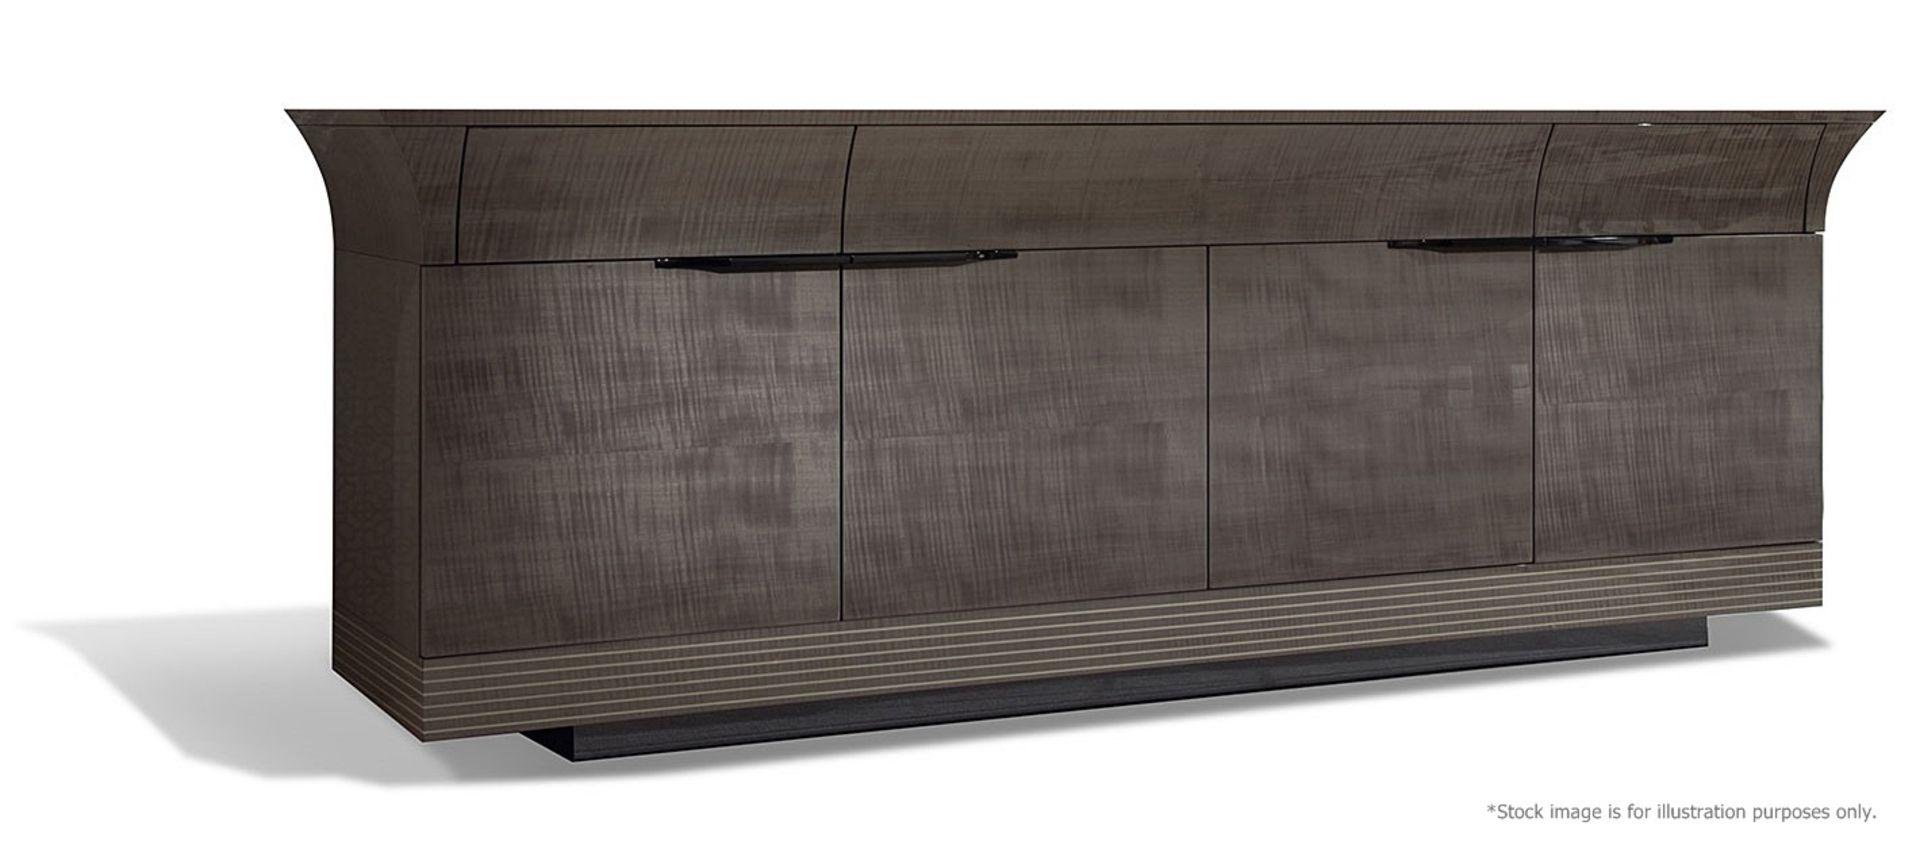 1 x GIORGIO COLLECTION 'Alchemy' Buffet / Sideboard Unit (Model: 6810/80) - Original RRP £3,495 - Image 2 of 8